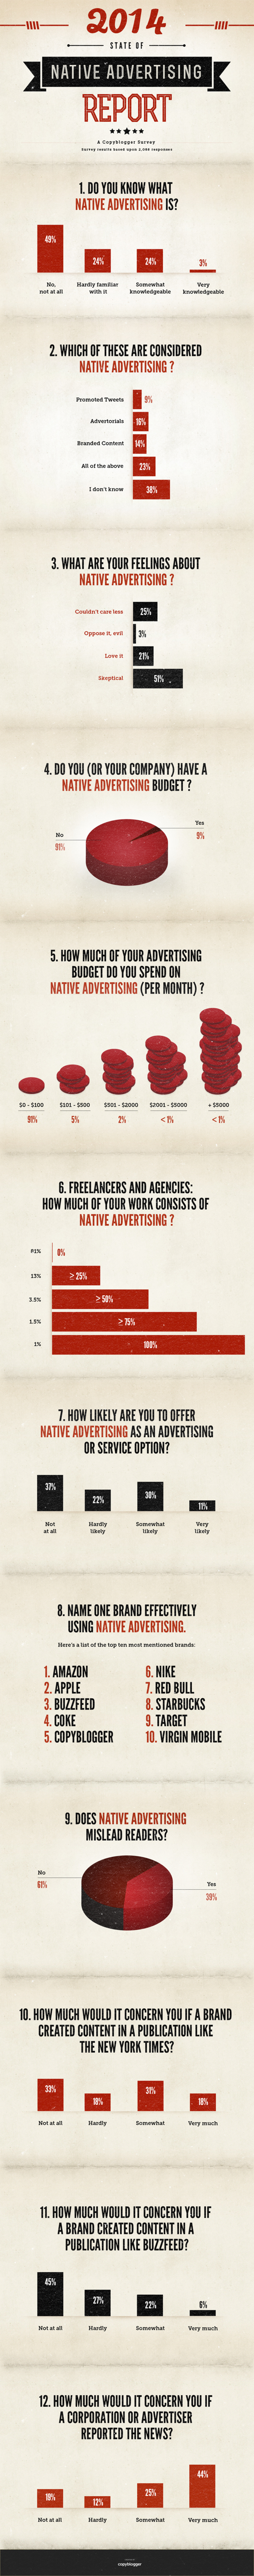 Copyblogger's 2014 State of Native Advertising survey Infographic